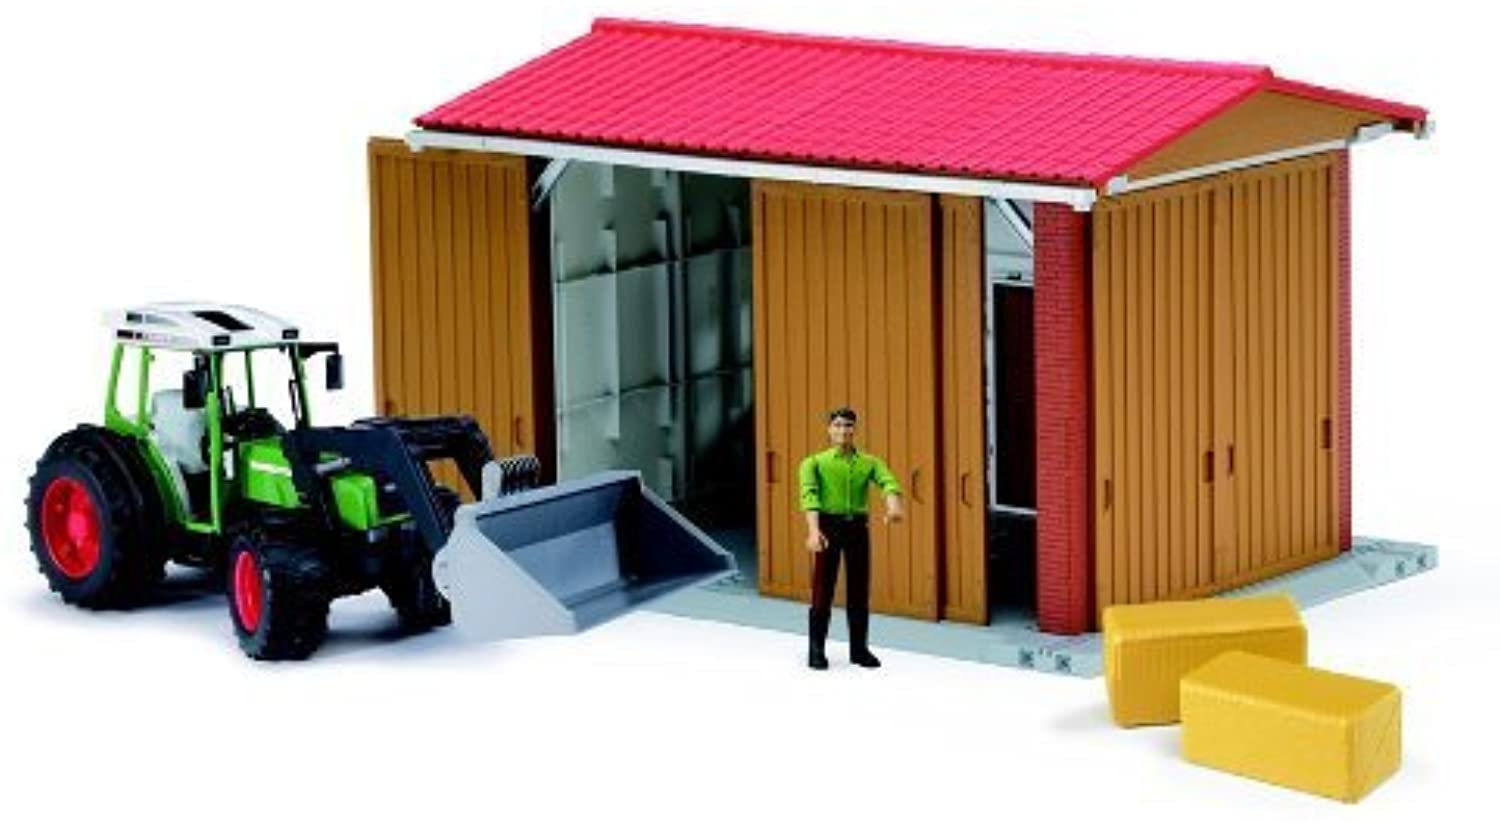 buena calidad Bruder Bworld Farm Farm Farm Shed with Man, Tractor and Accessories by Bruder  caliente